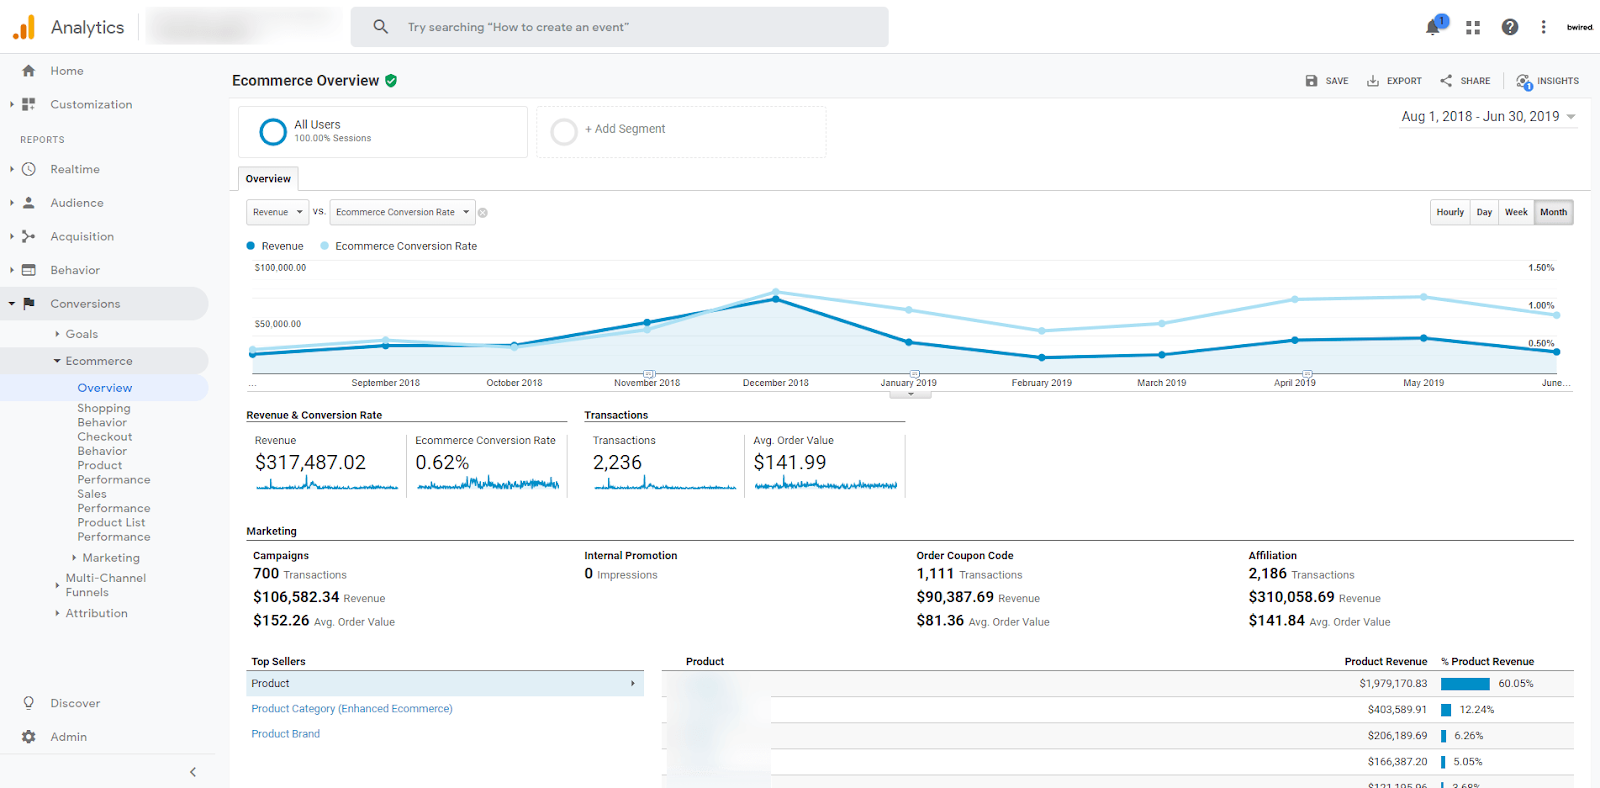 Ecommerce/Conversion Reports